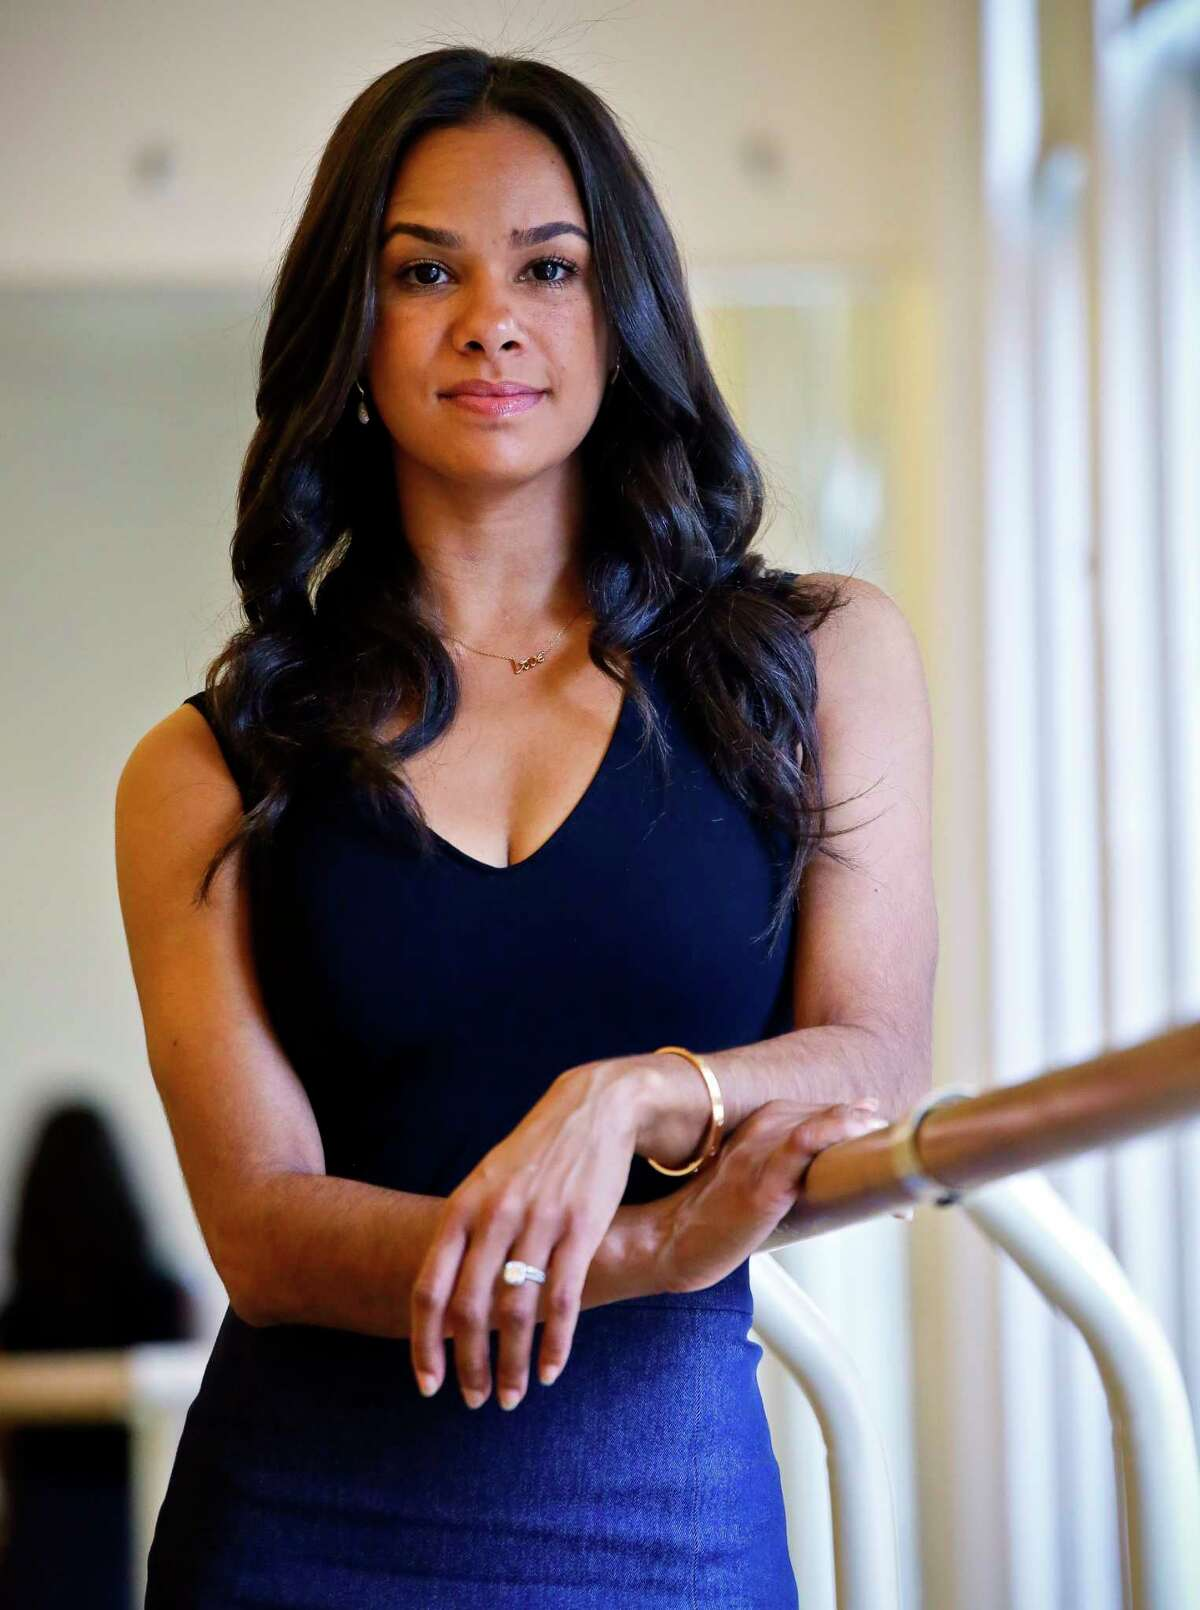 """In this March 21, 2017 photo, Misty Copeland, first African-American female principal dancer with the American Ballet Theatre, poses during an interview at Steps on Broadway dance school in New York. Copeland's book, """"Ballerina Body: Dancing and Eating Your Way to a Leaner, Stronger, and More Graceful You,"""" compiles her advice for healthy living. (AP Photo/Bebeto Matthews)"""